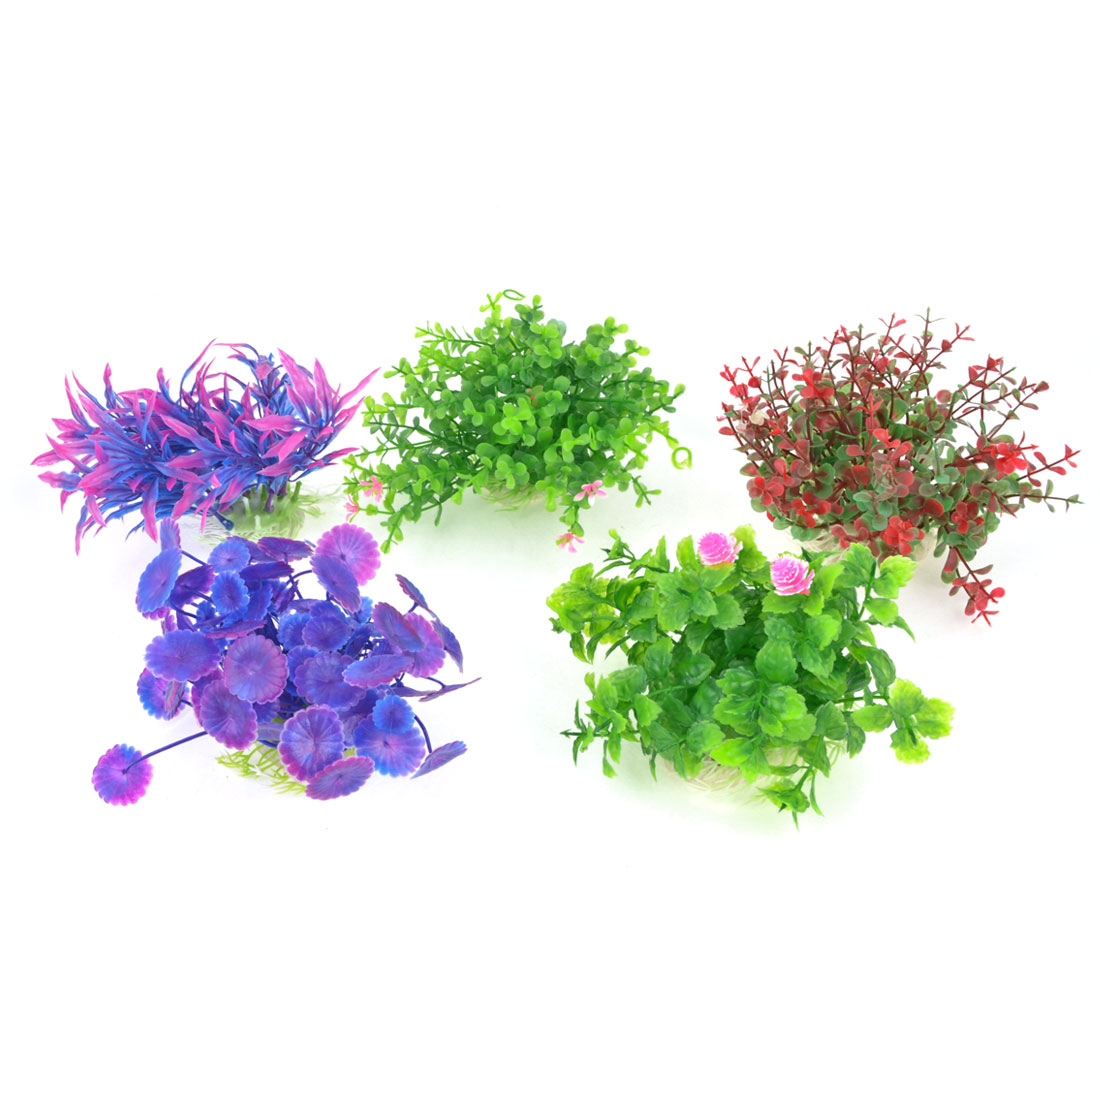 Fish Tank Artificial Multicolored Water Grass Ornament 10cm Height 5 PCS